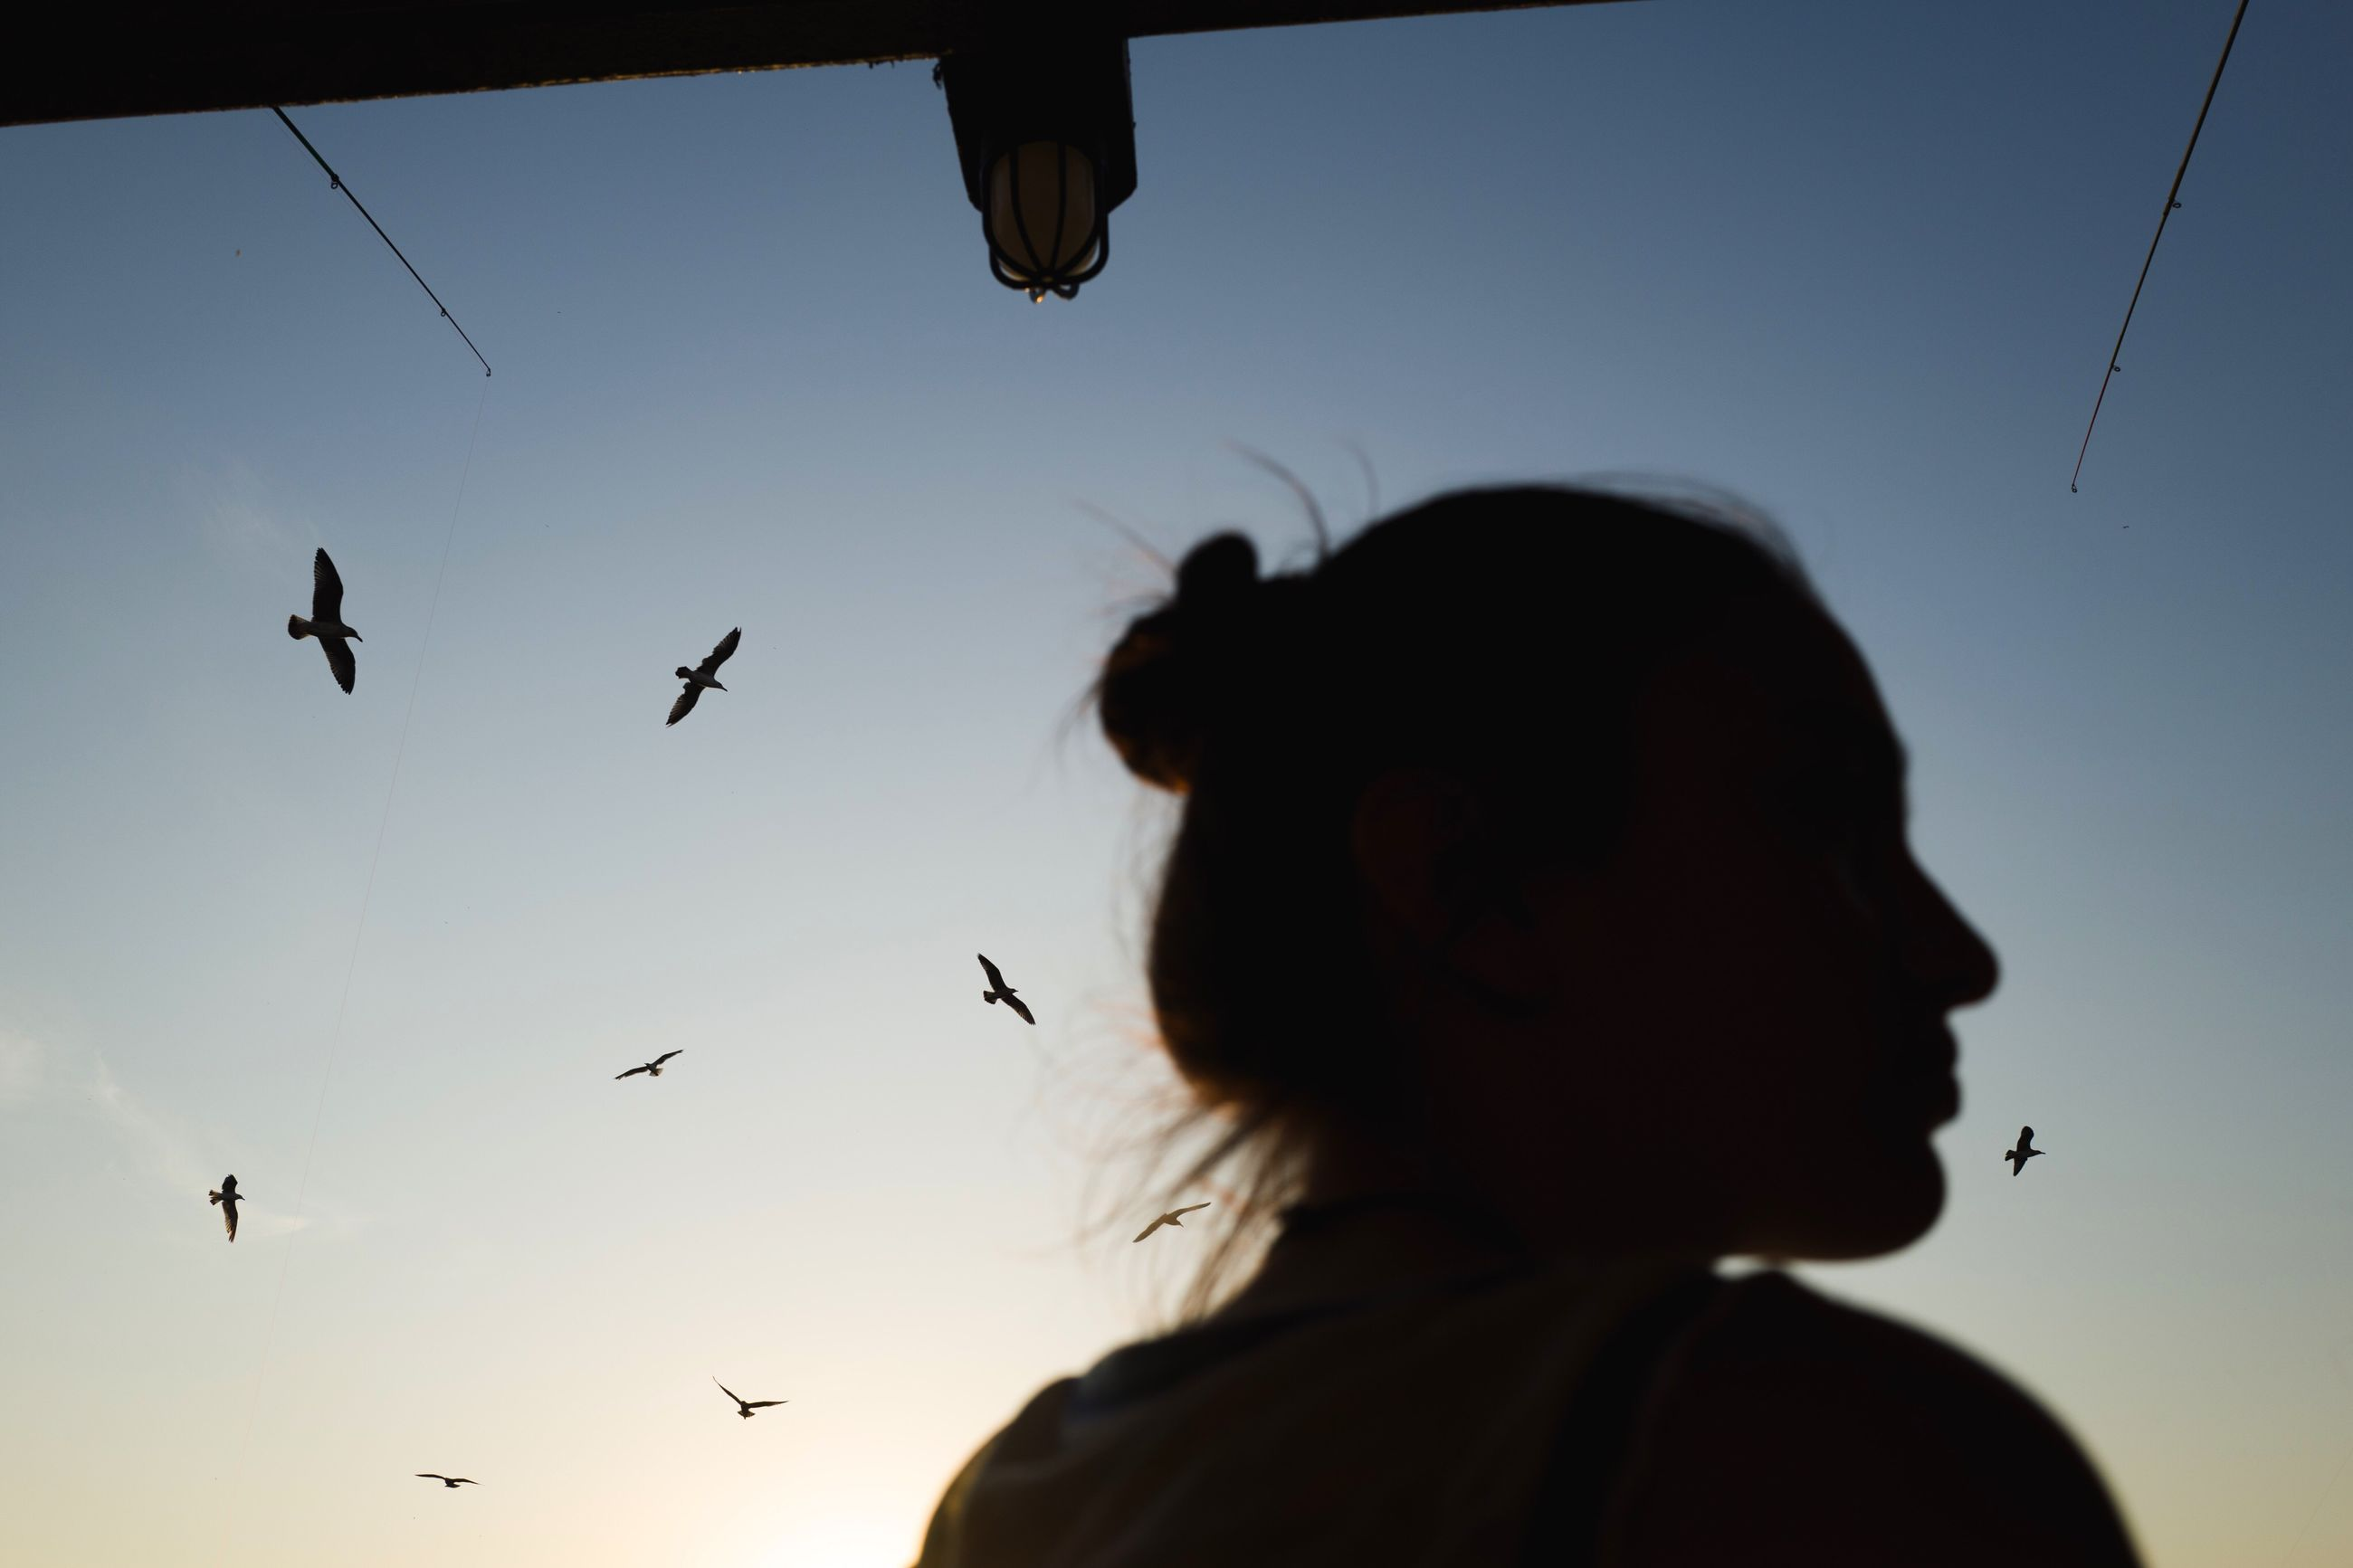 sky, headshot, one person, flying, real people, lifestyles, silhouette, animals in the wild, human hair, bird, leisure activity, day, close-up, large group of animals, outdoors, nature, adults only, people, adult